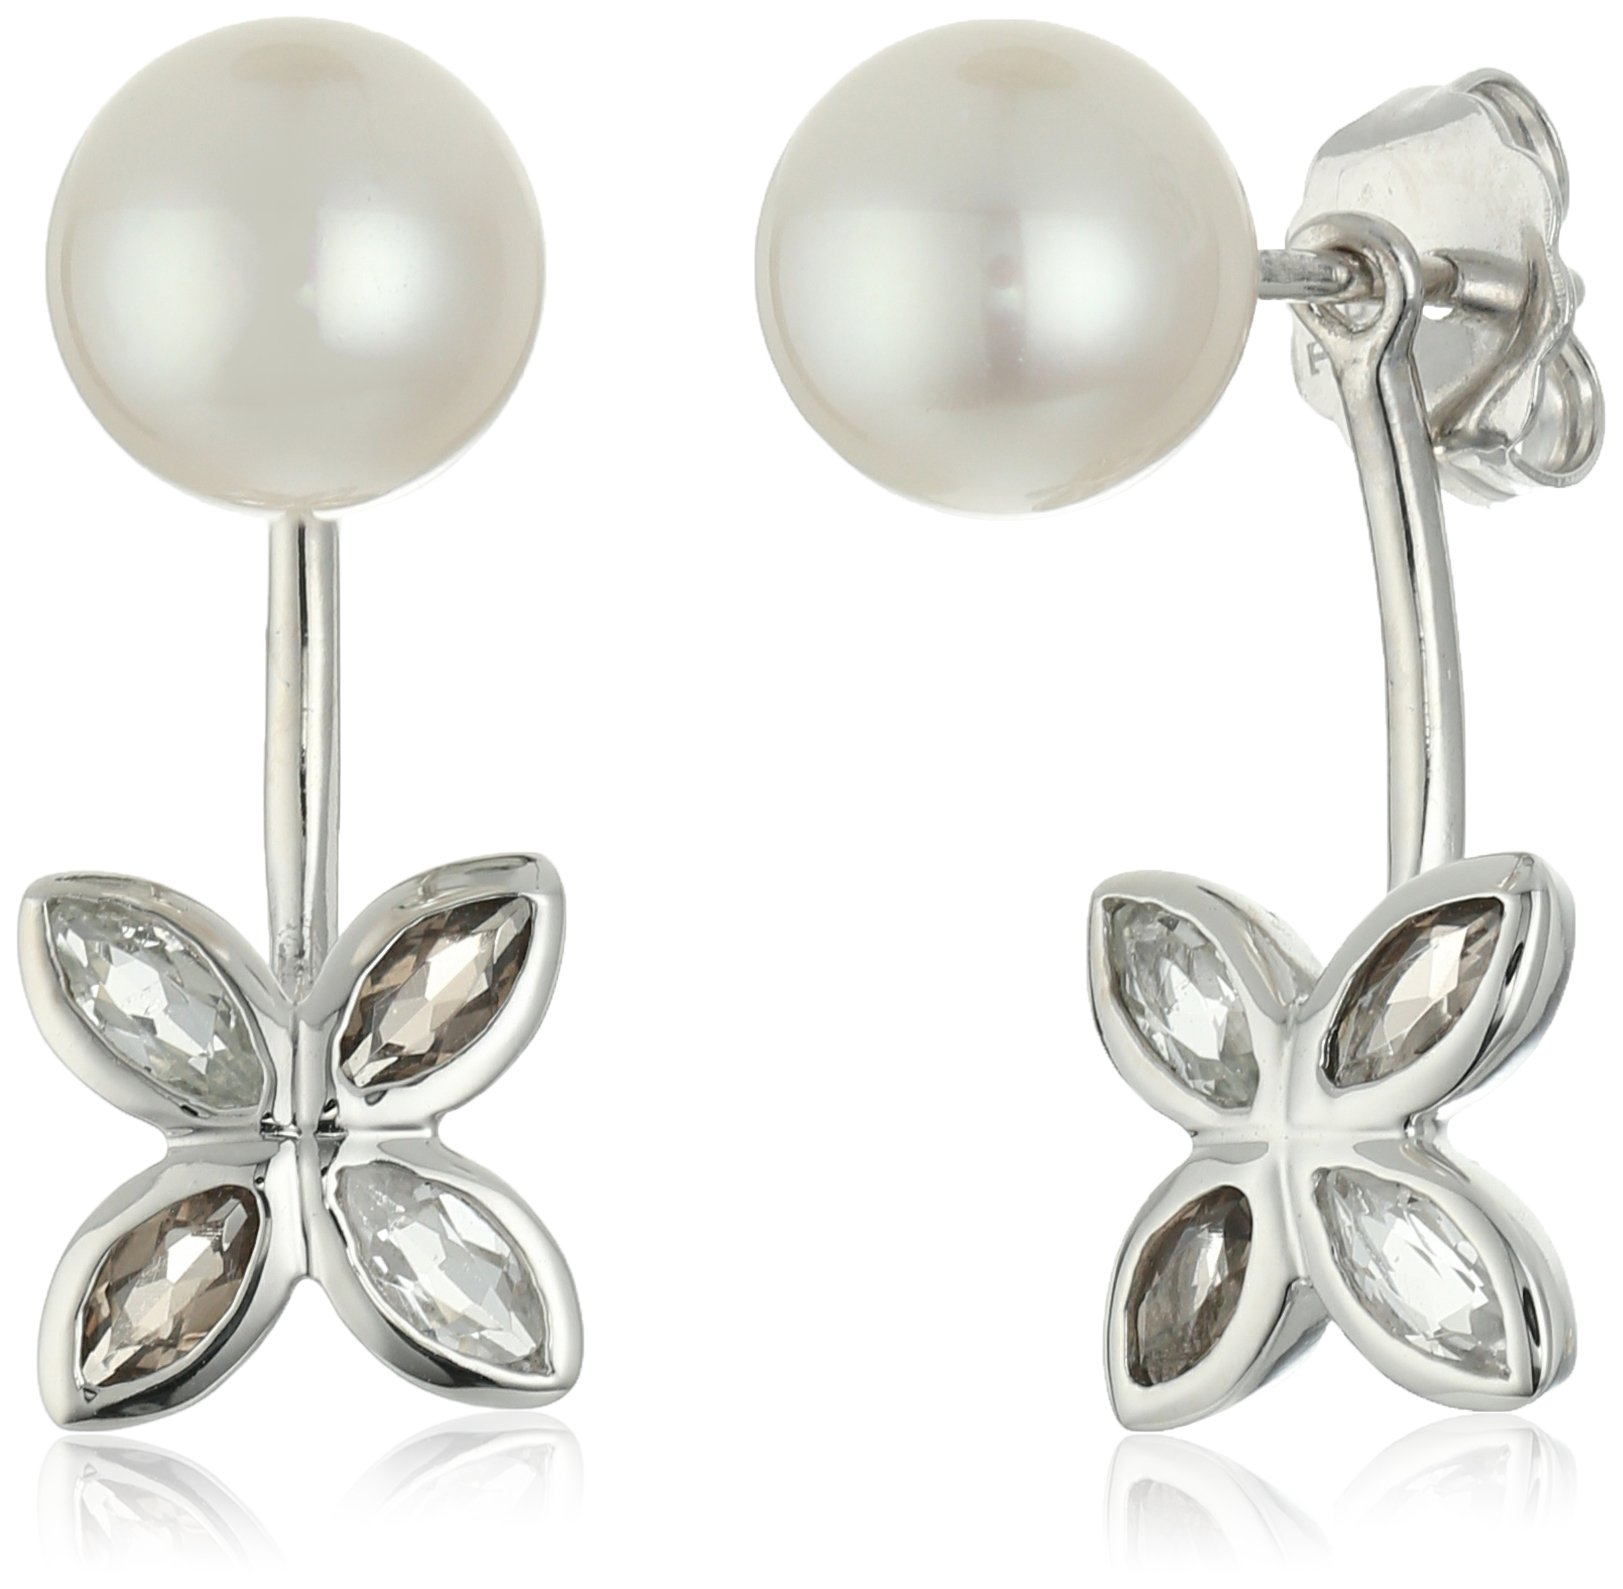 TARA Pearls 7.5X8mm Akoya Pearl and White Topaz and Smoky Quartz Flower Jacket Sterling Silver Earring Jackets